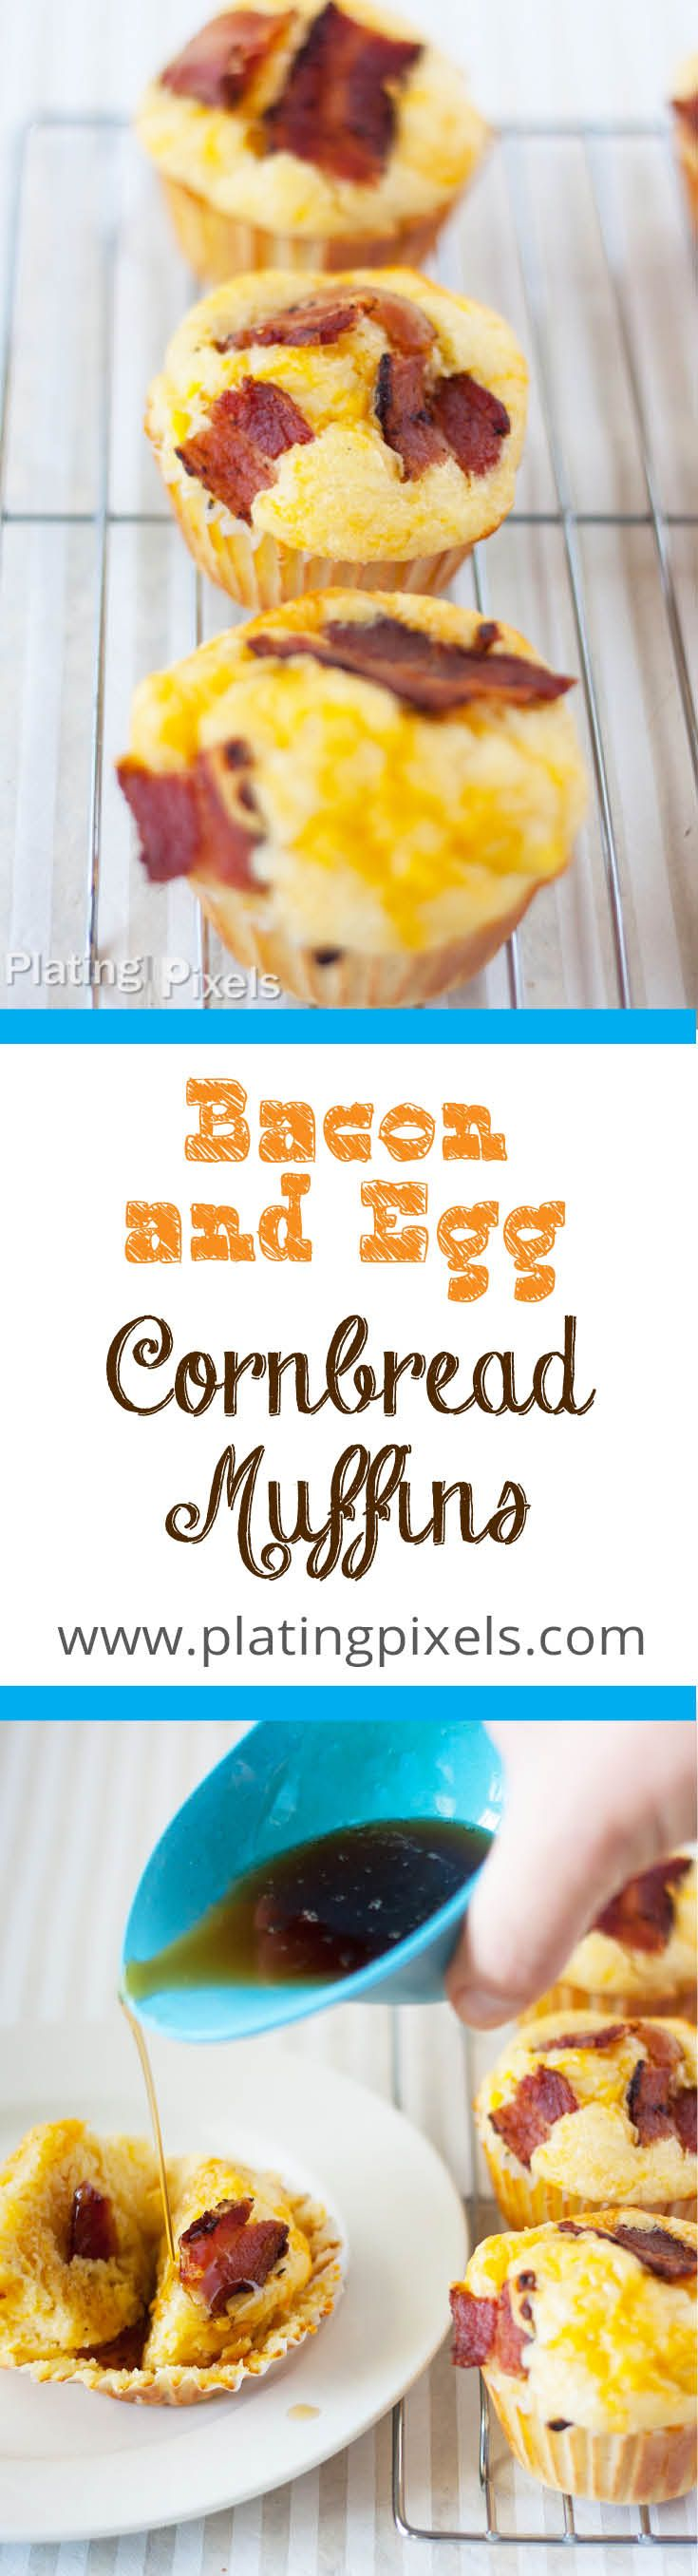 Bacon and Egg Cornbread Muffins by Plating Pixels. Swirled with corn kernels, scrambled eggs, topped with crisp bacon and cheese. A full breakfast poured it into a muffin. - www.platingpixels.com